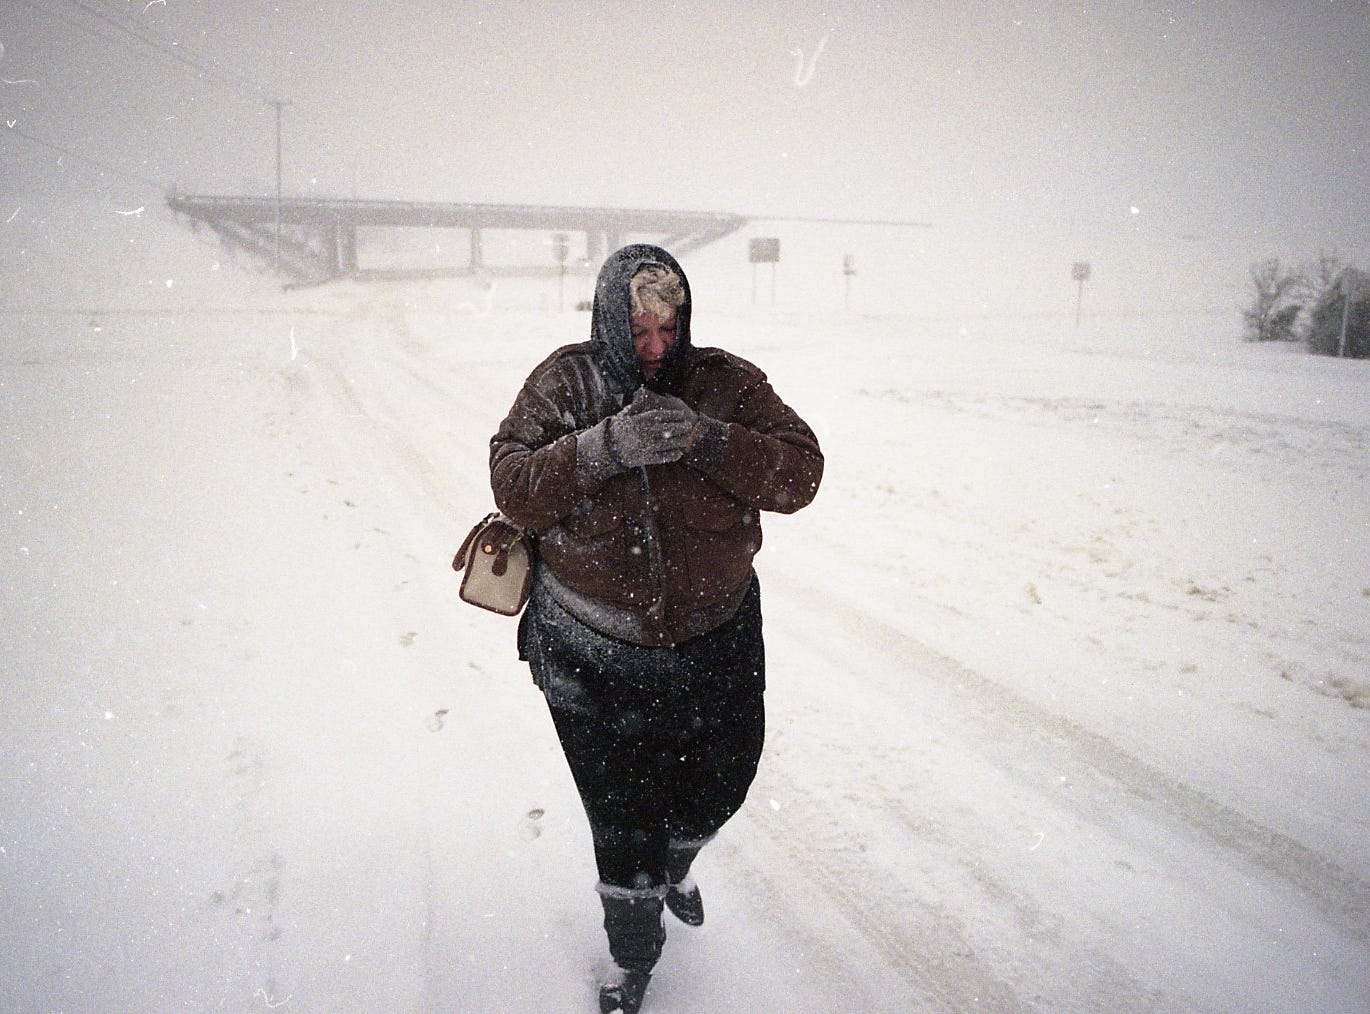 Dotty Hunter, who was stranded at work, walks home on Emory Road in March 1993. Hunter, who was traveling east on Emory Road just east of the I-75 interchange, said she wanted to get home to her two teenaged children.